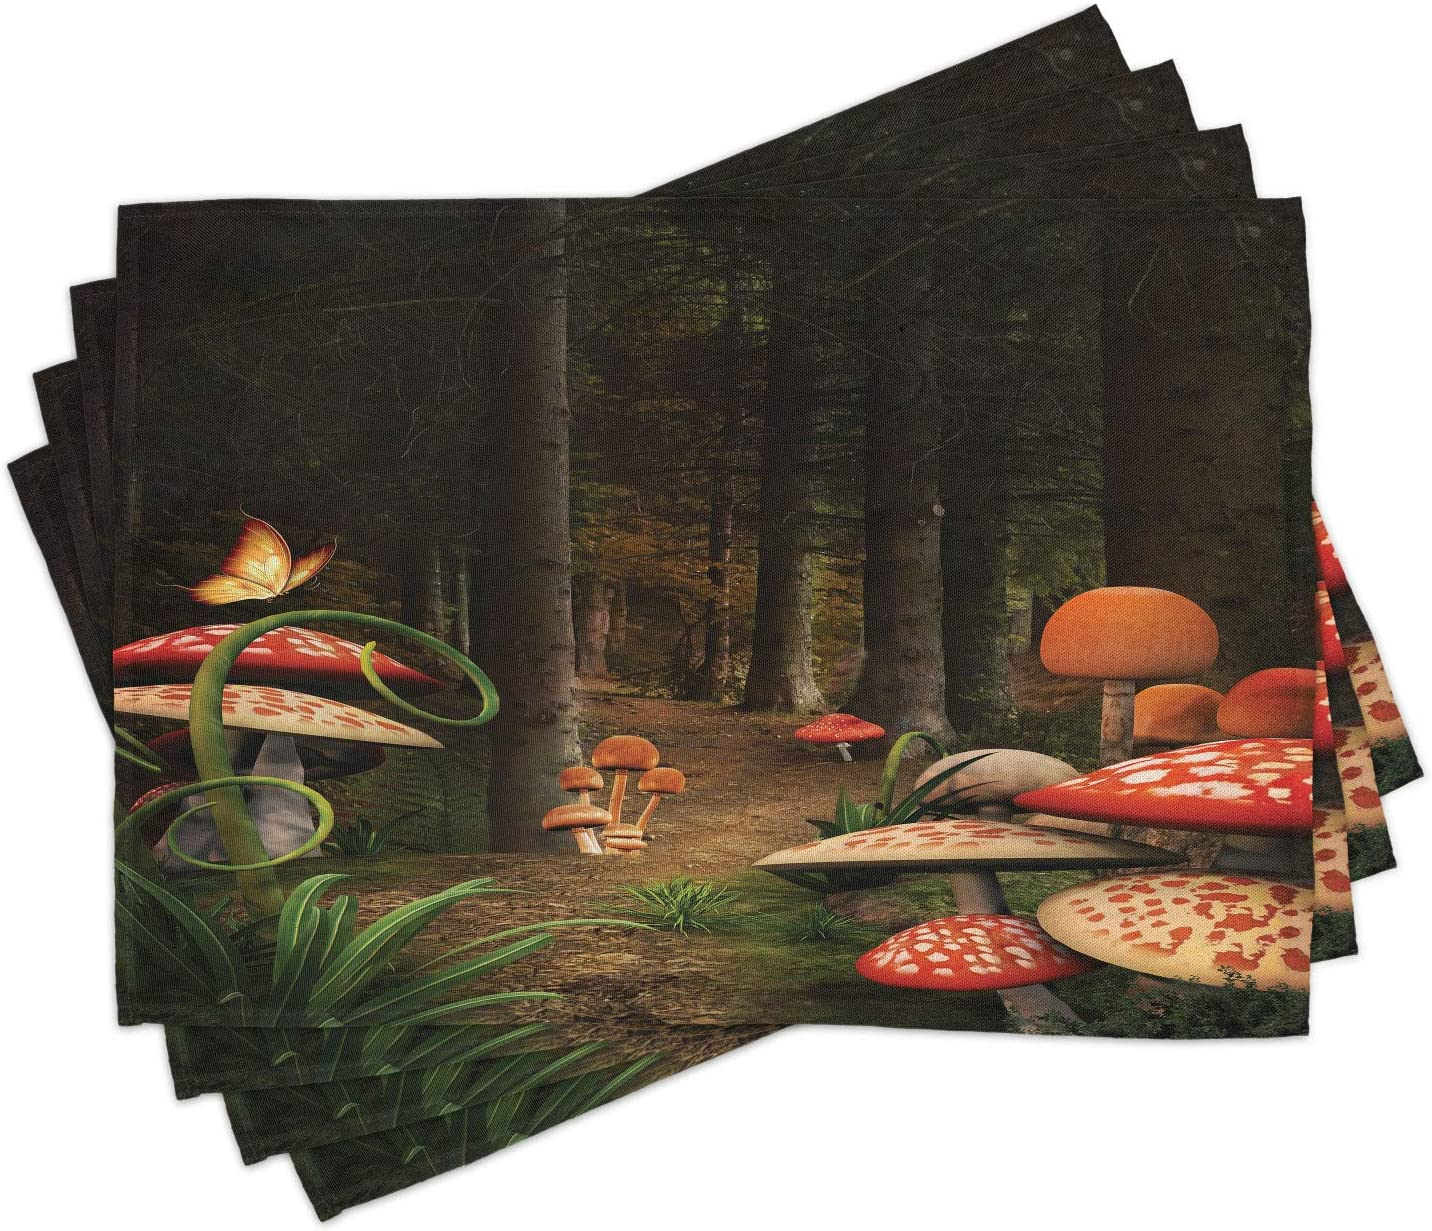 Ambesonne Mushroom Place Mats Set of 4, Mushrooms in Deep Dark Forest Fantasy Nature Theme Earth Path Mystical Image, Washable Fabric Placemats for Dining Room Kitchen Table Decor, Pomegranate Green